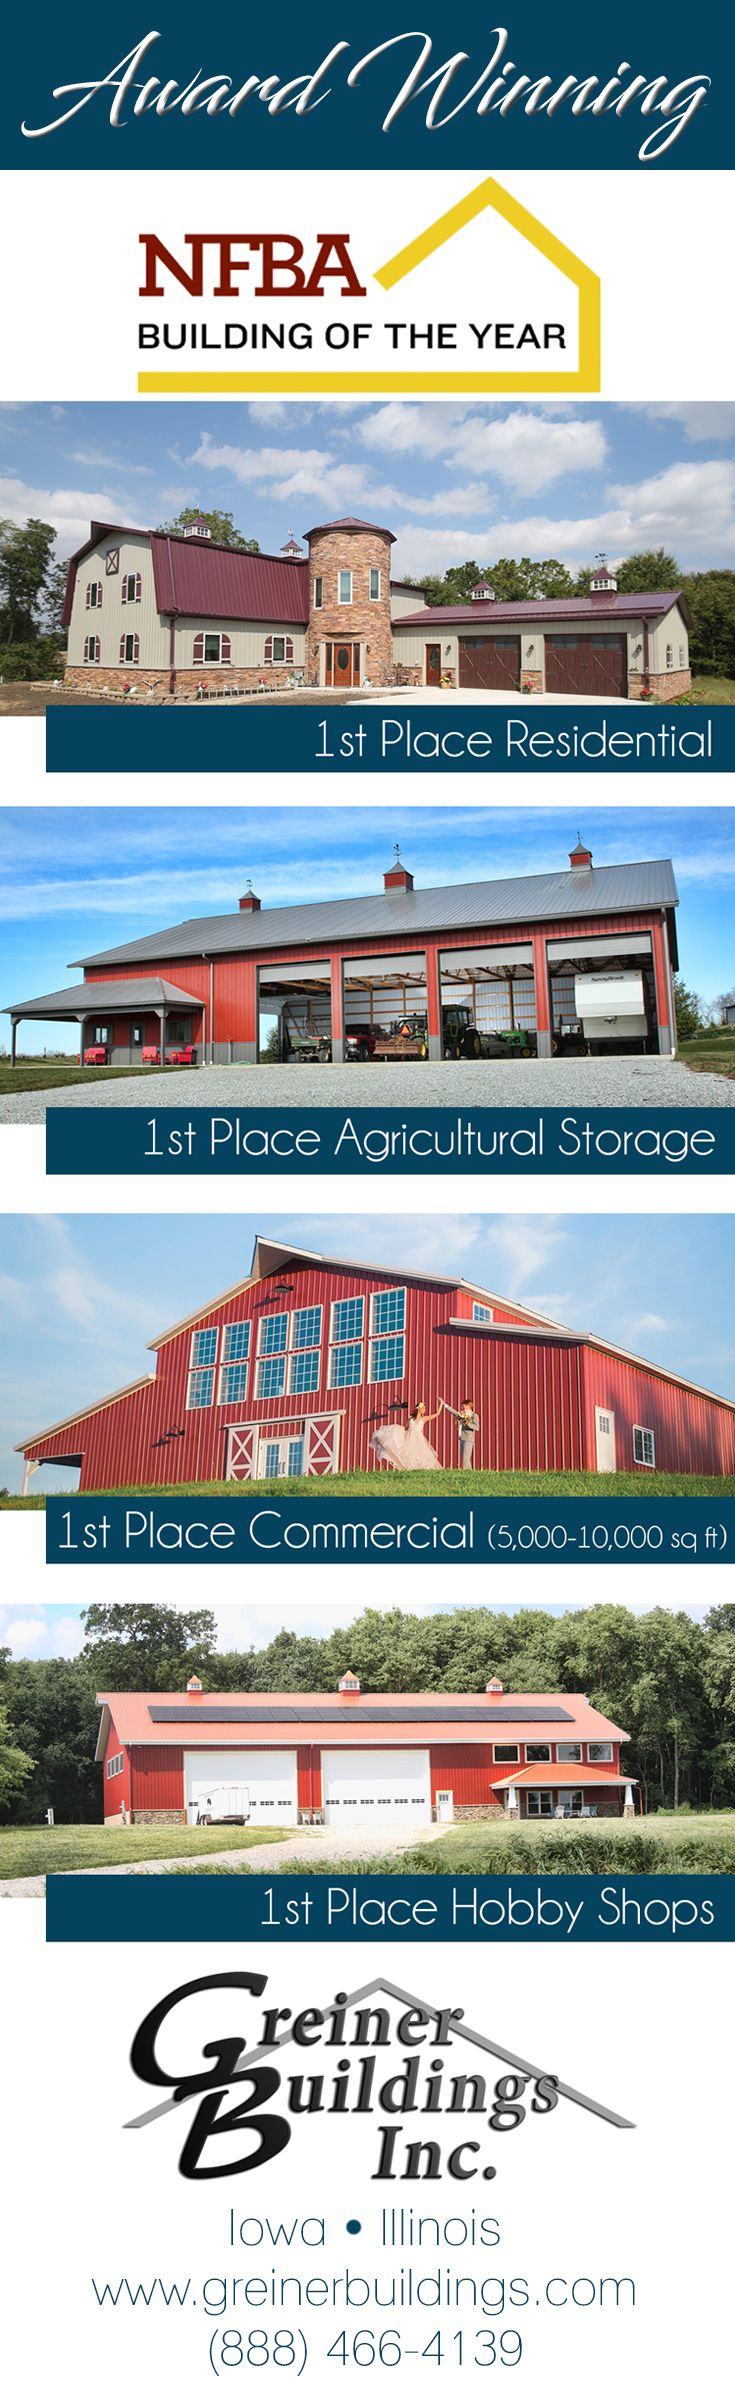 NFBA Award Winning Post Frame Buildings from Greiner Buildings, Inc. Residential, Agricultural, Commercial, Hobby Shop.